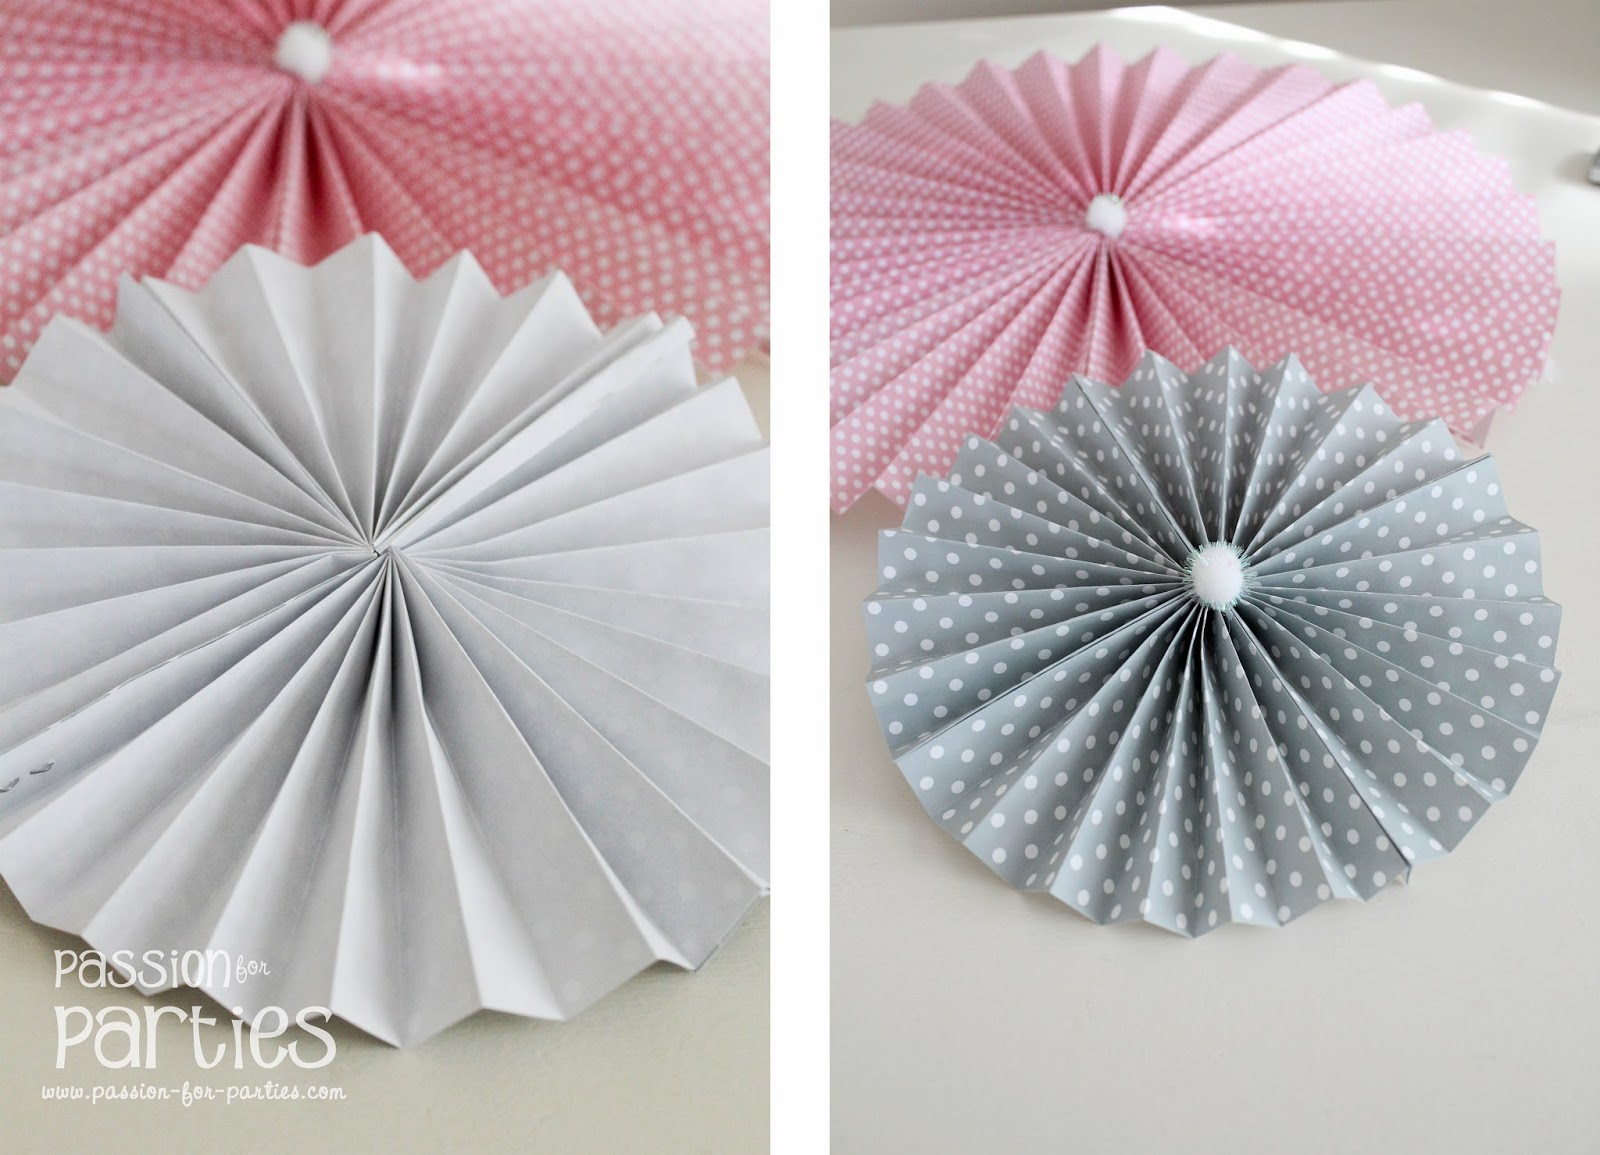 How to make rosettes out of paper - And There You Have Your Rosettes